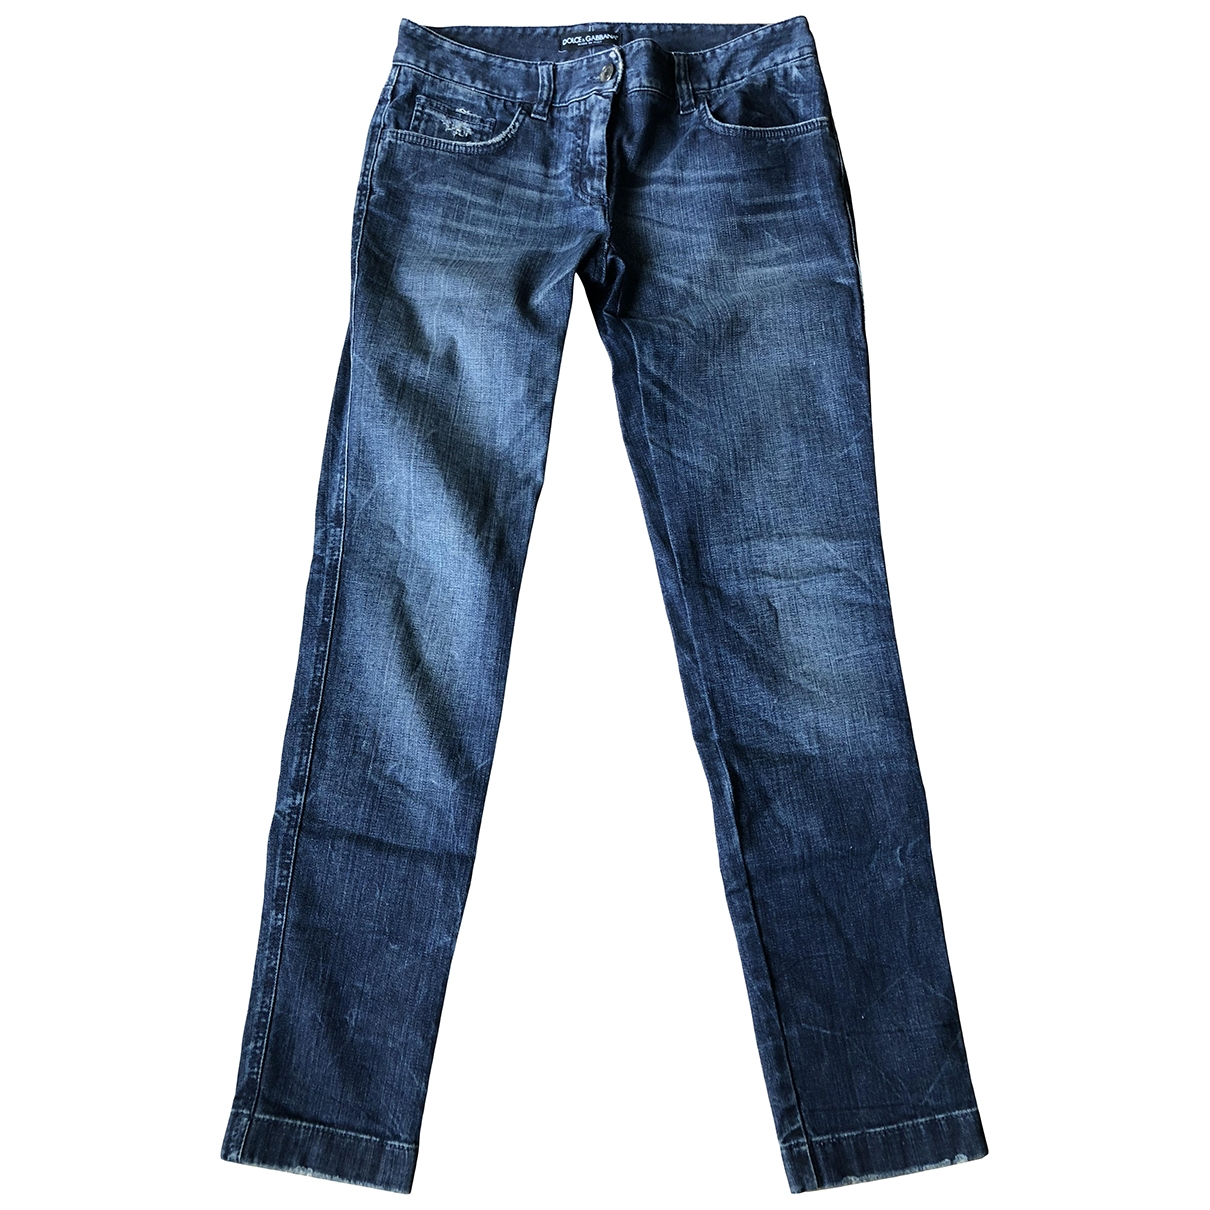 Dolce & Gabbana \N Blue Cotton Jeans for Women 36 FR